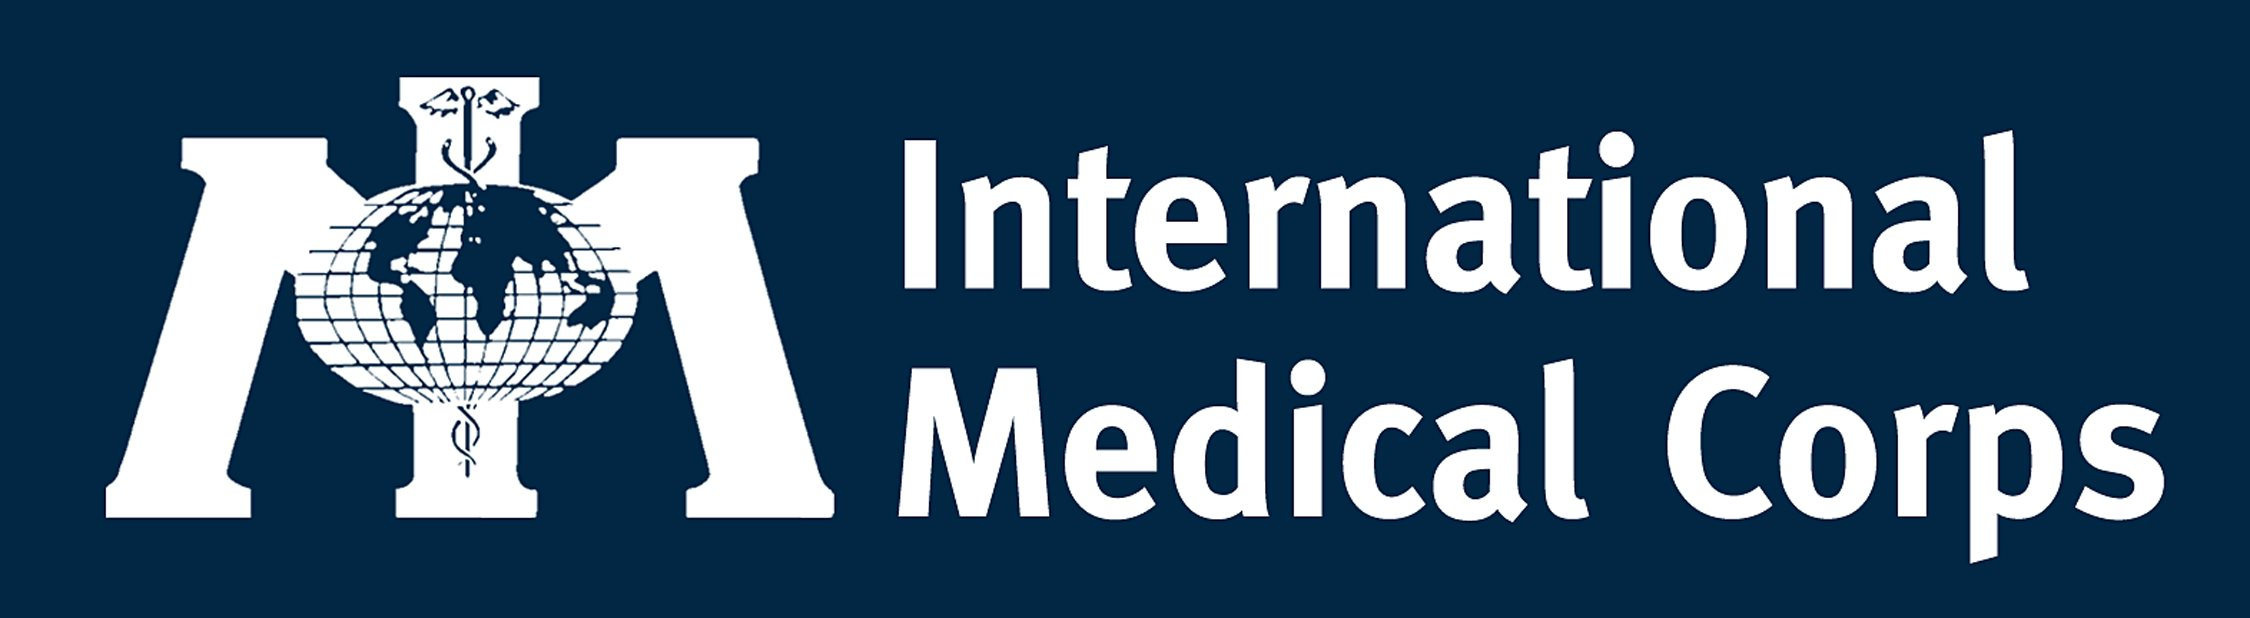 International Medical Corps - Philippines